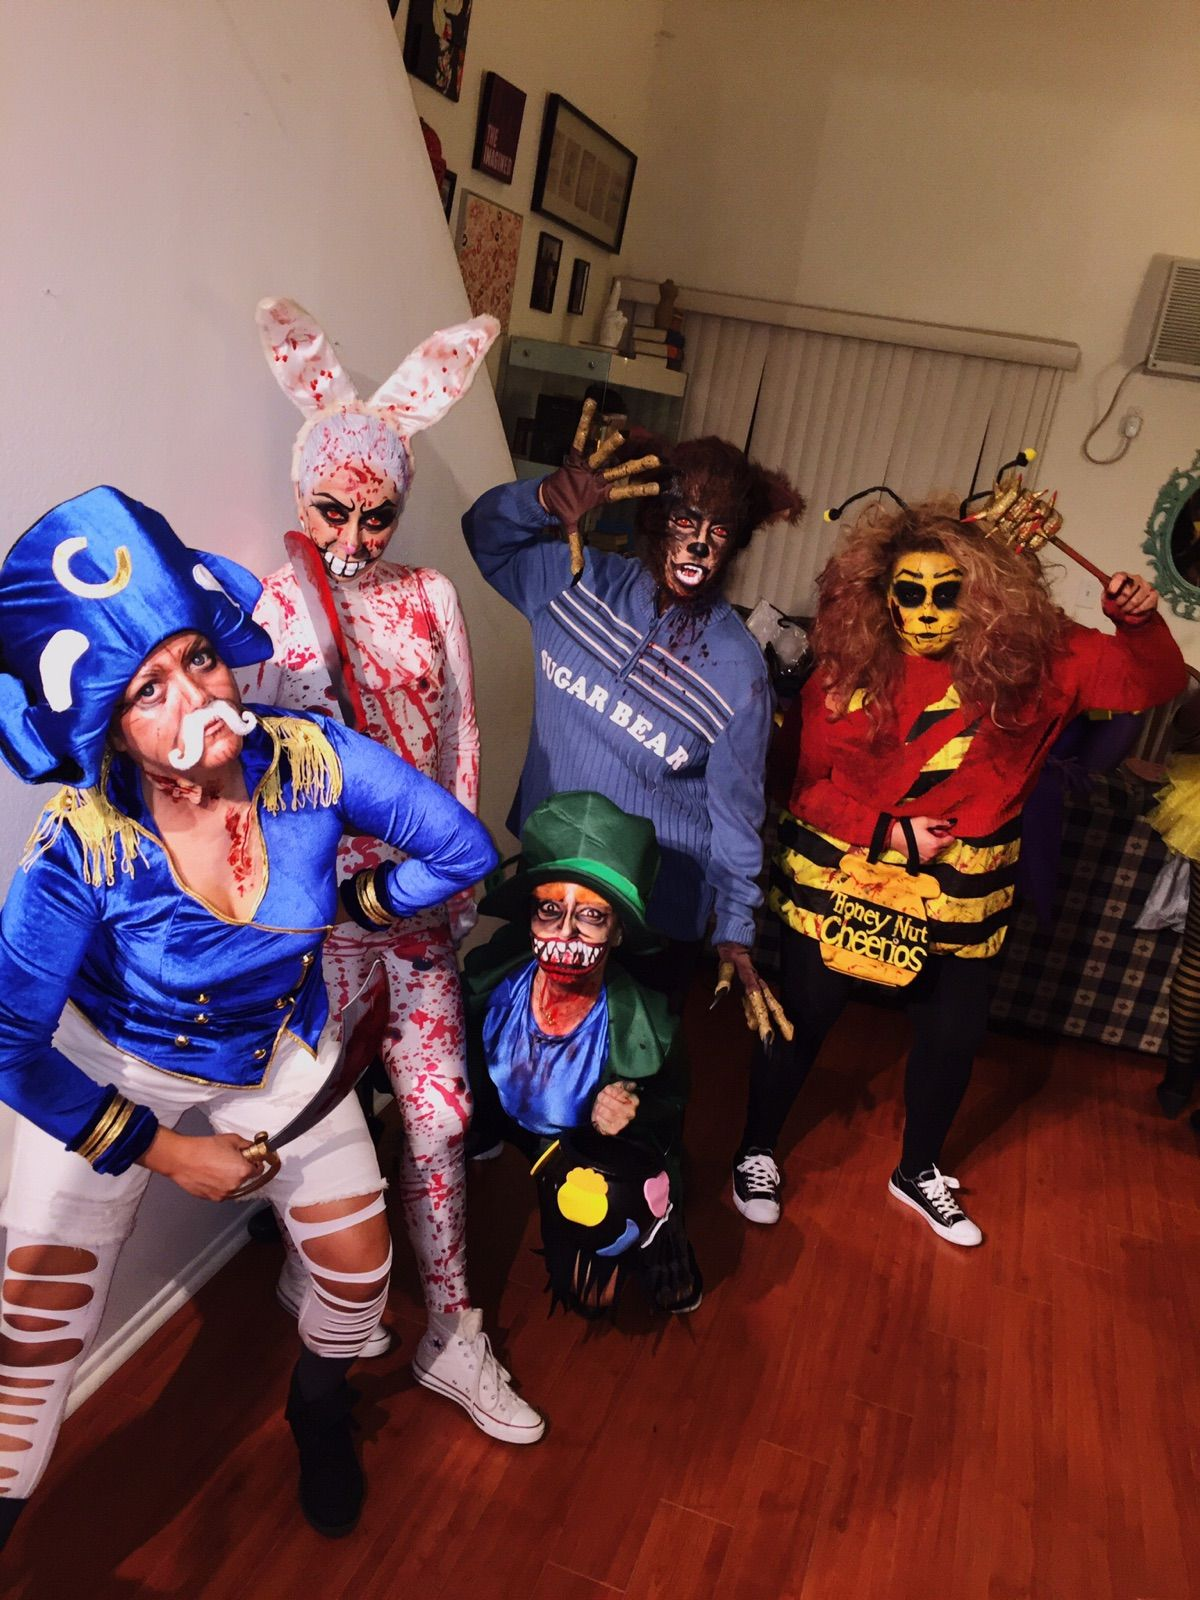 Cereal killers best group halloween costume best group